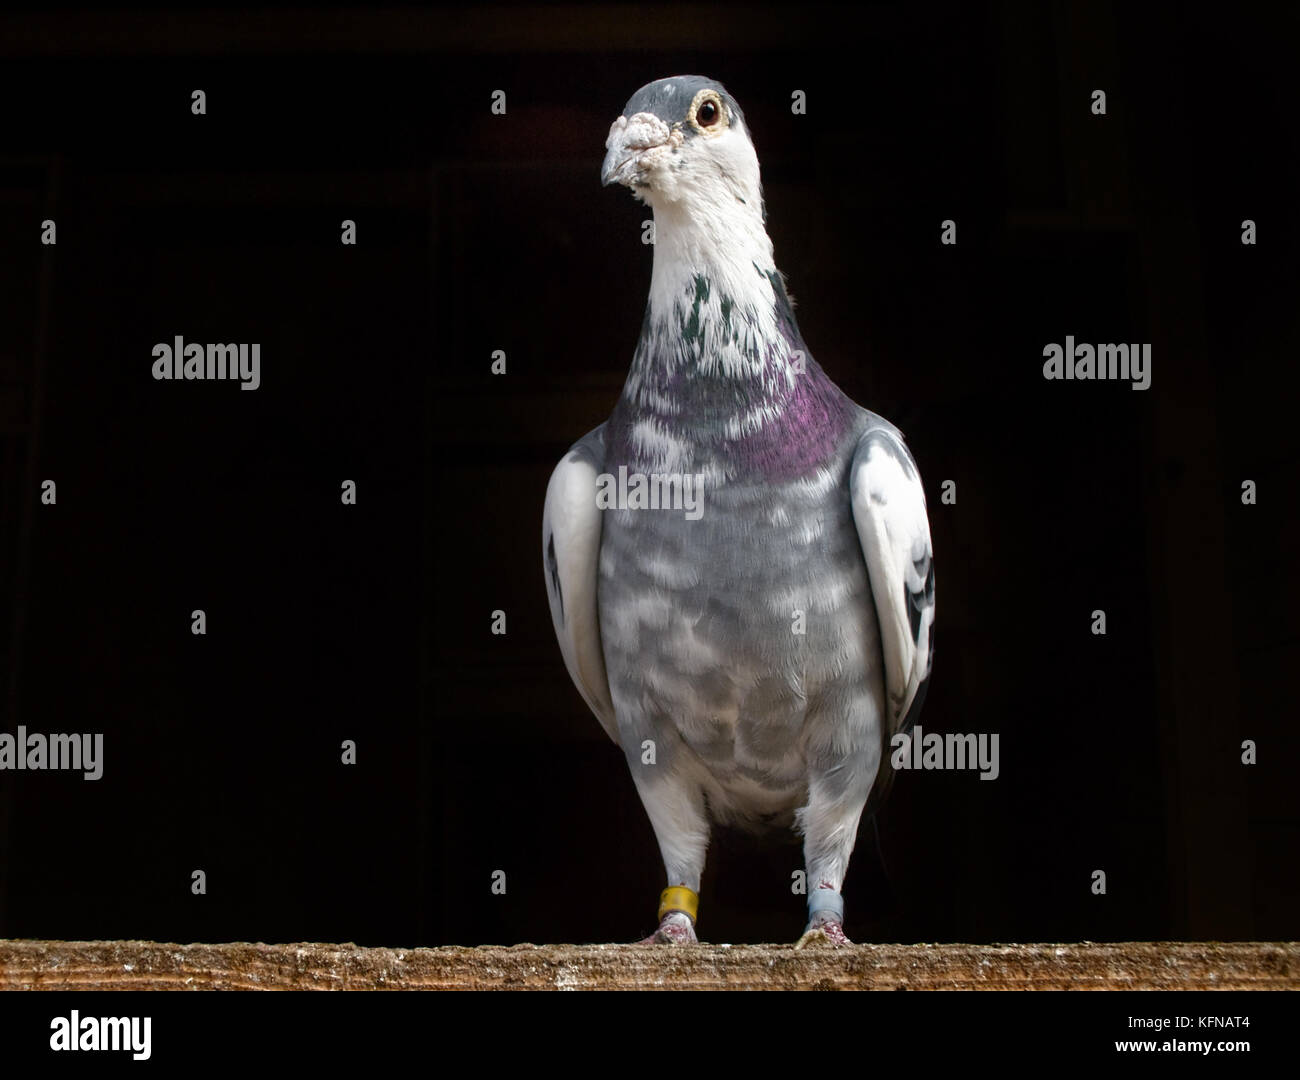 Racing Pigeon sitting on wood against a black background